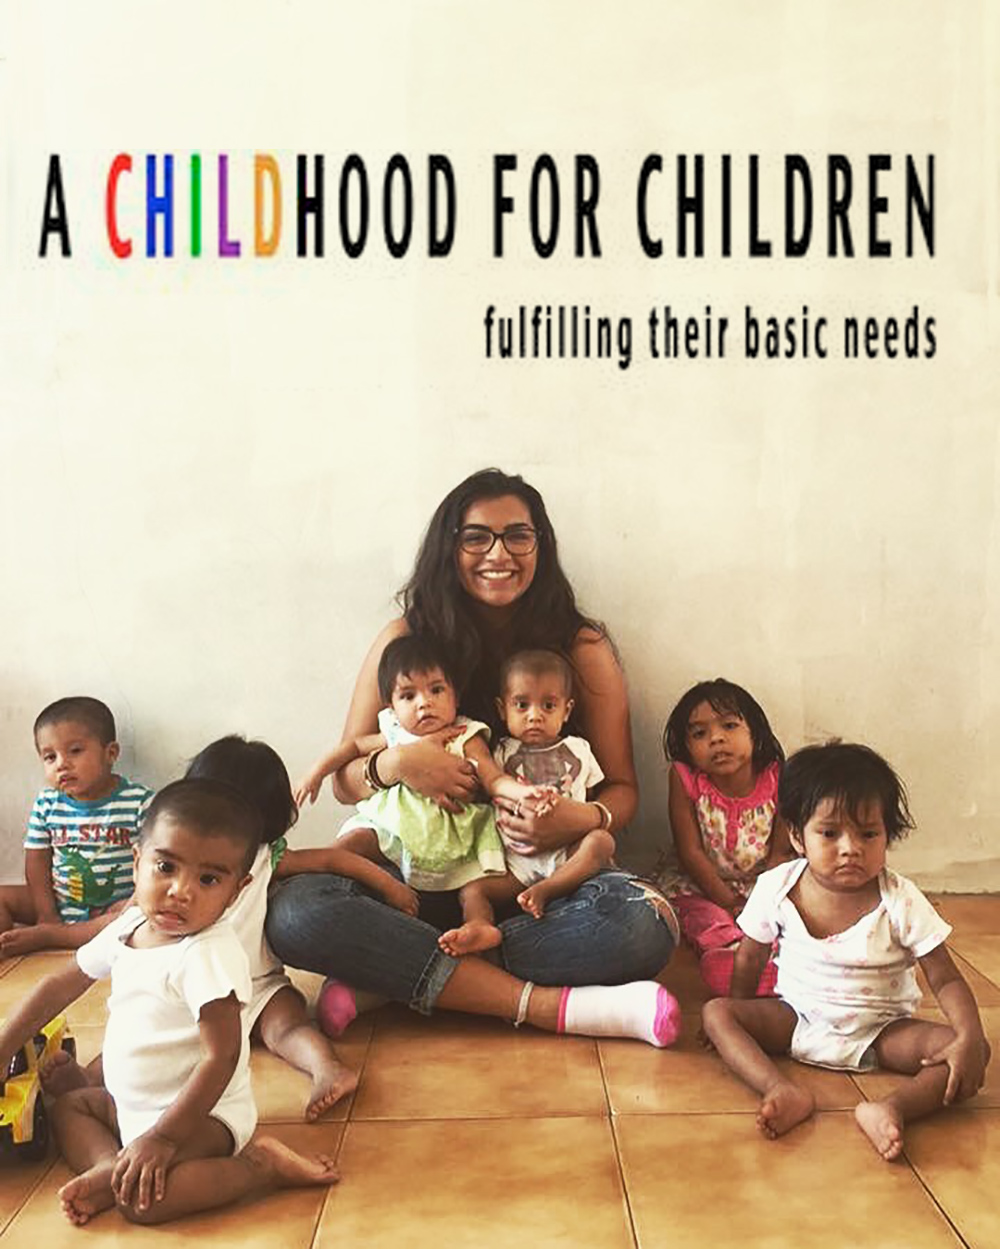 A Childhood for Children | David Young and Company